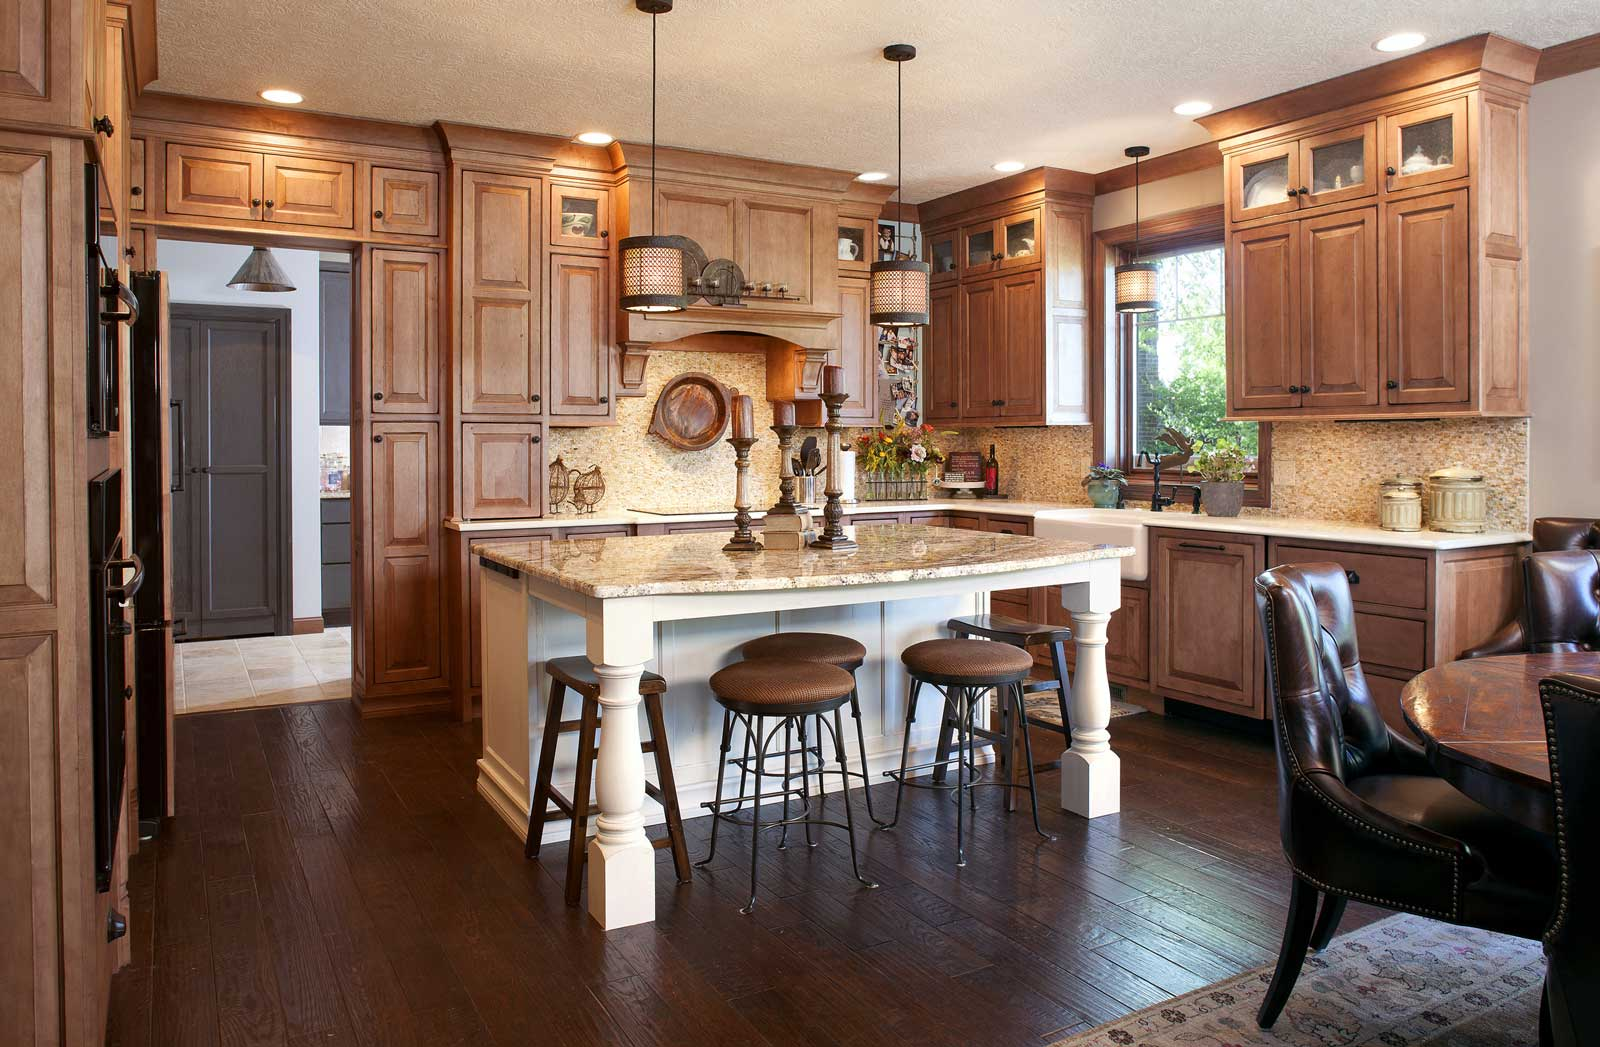 Riley Kitchen Bath Co Kitchen And Bath Designers In Bristol Ri With Many Years Of Professional Design And Building Experience